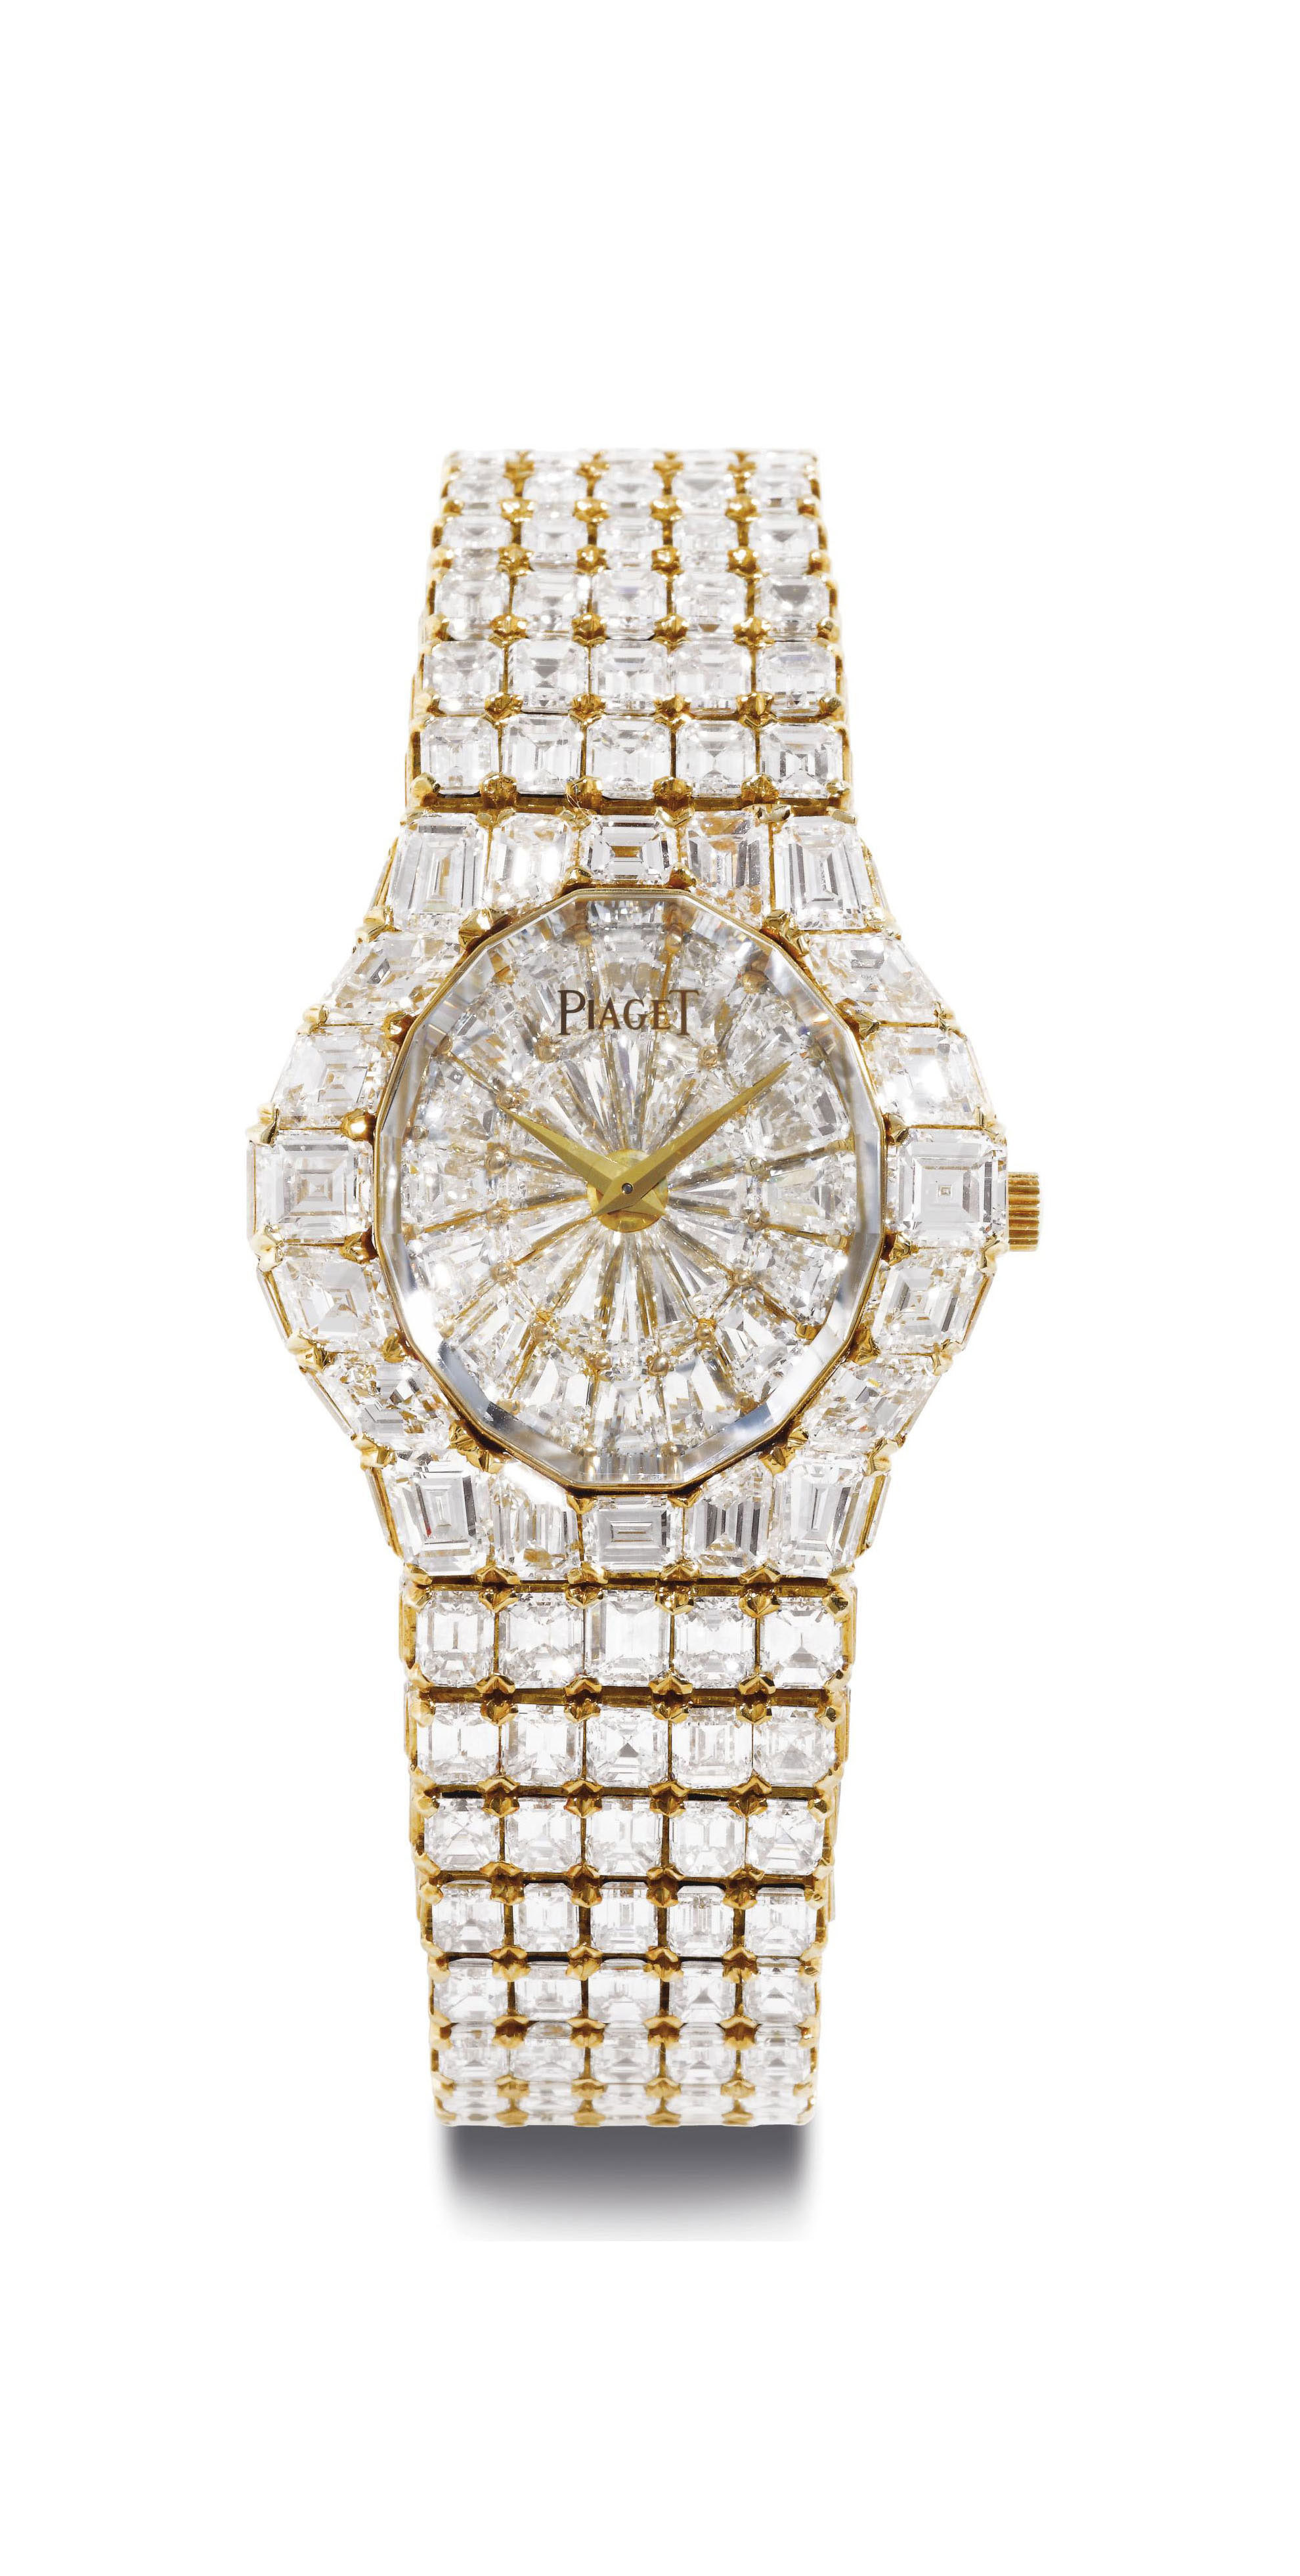 PIAGET. AN EXTREMELY RARE AND SUPERLATIVE 18K GOLD AND DIAMOND BRACELET WATCH